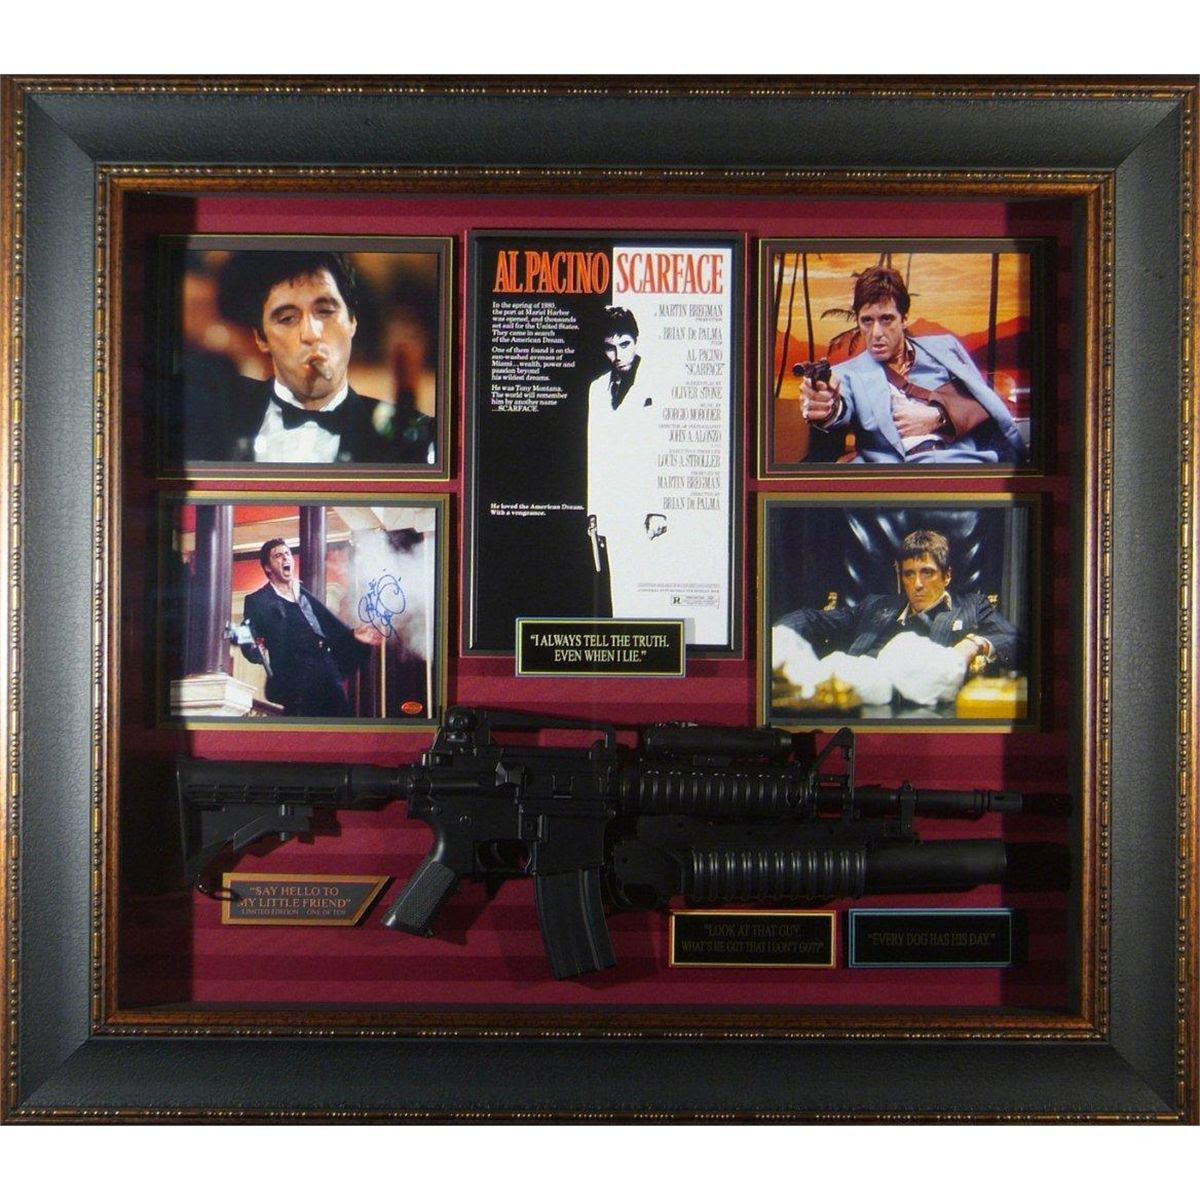 Entertainment Scarface Scarface Movie Collage Signed By Al Pacino